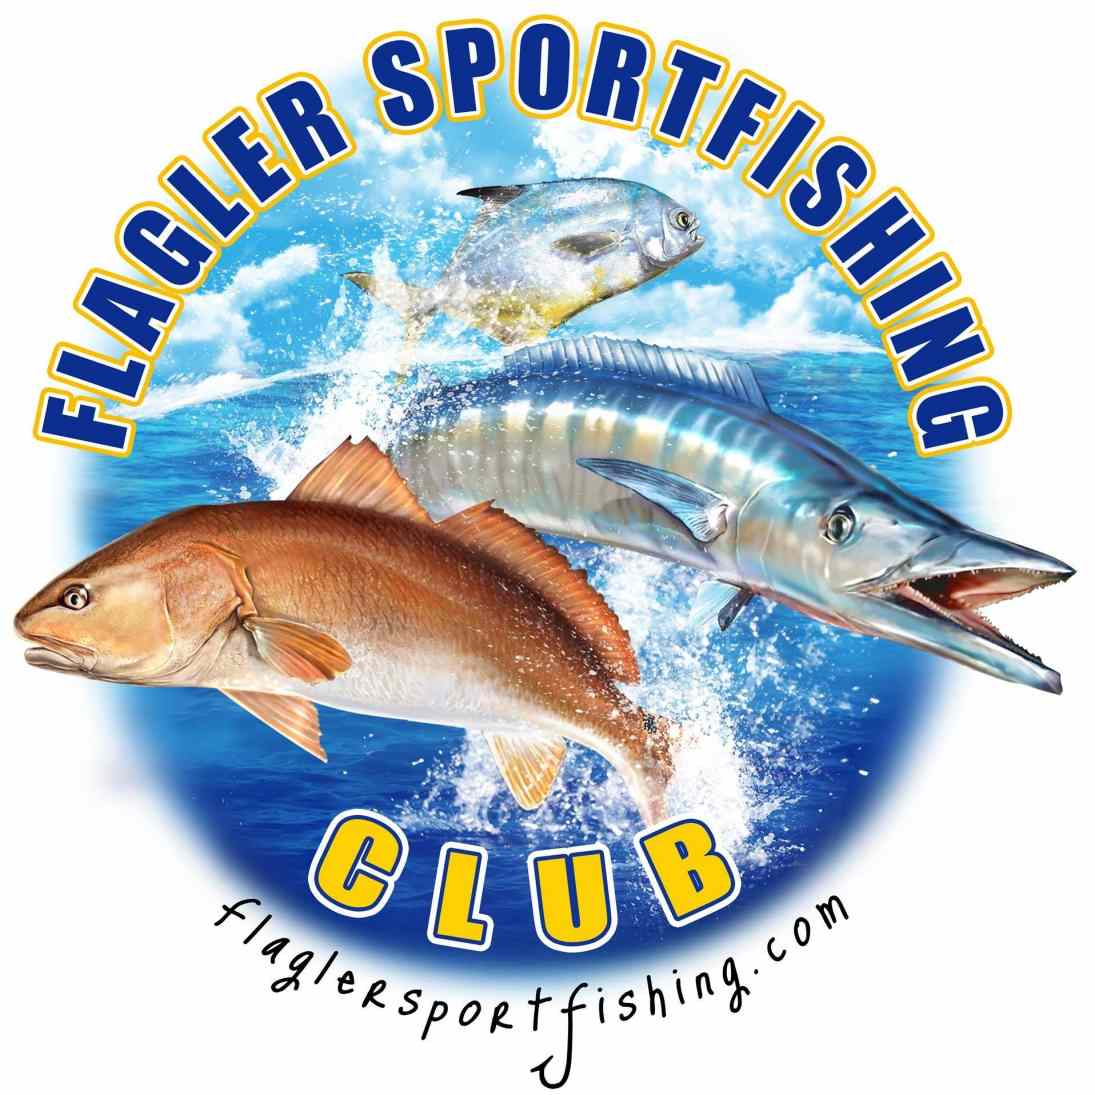 The Flagler Sportfishing Club's Annual Spring Classic is April 28th.